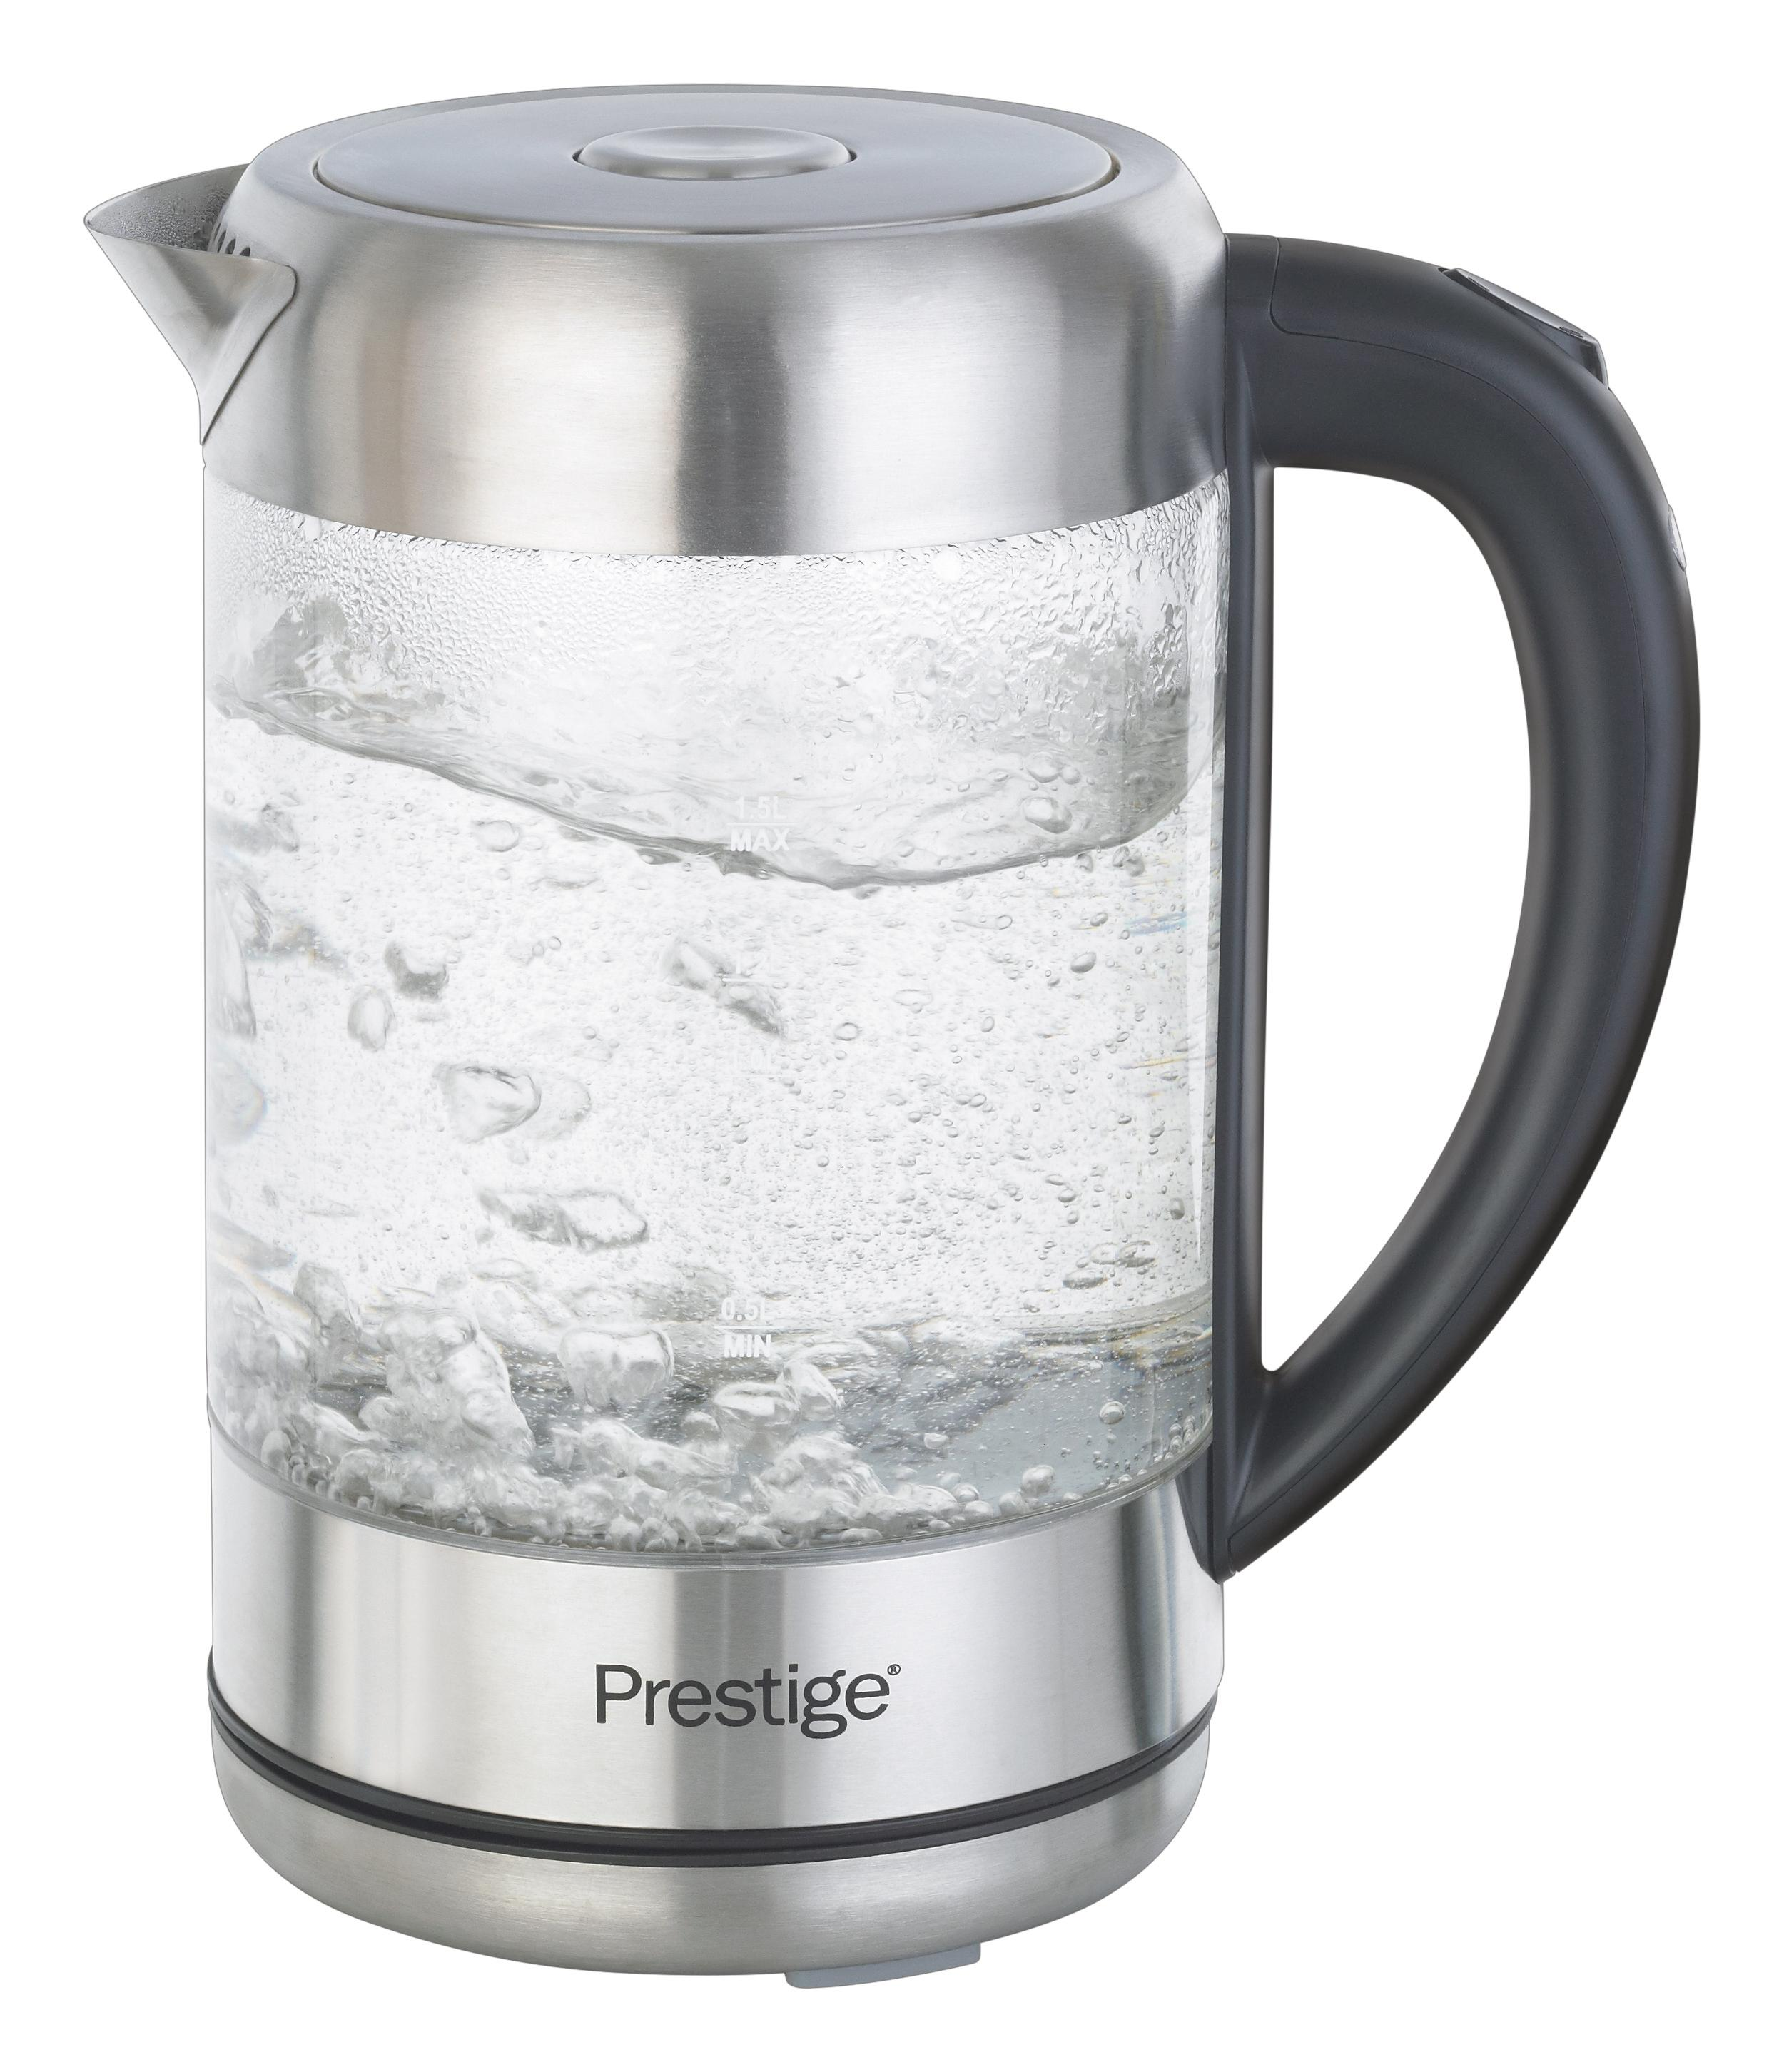 Prestige Kettle, Glass/Brushed Stainless Steel: Amazon.co